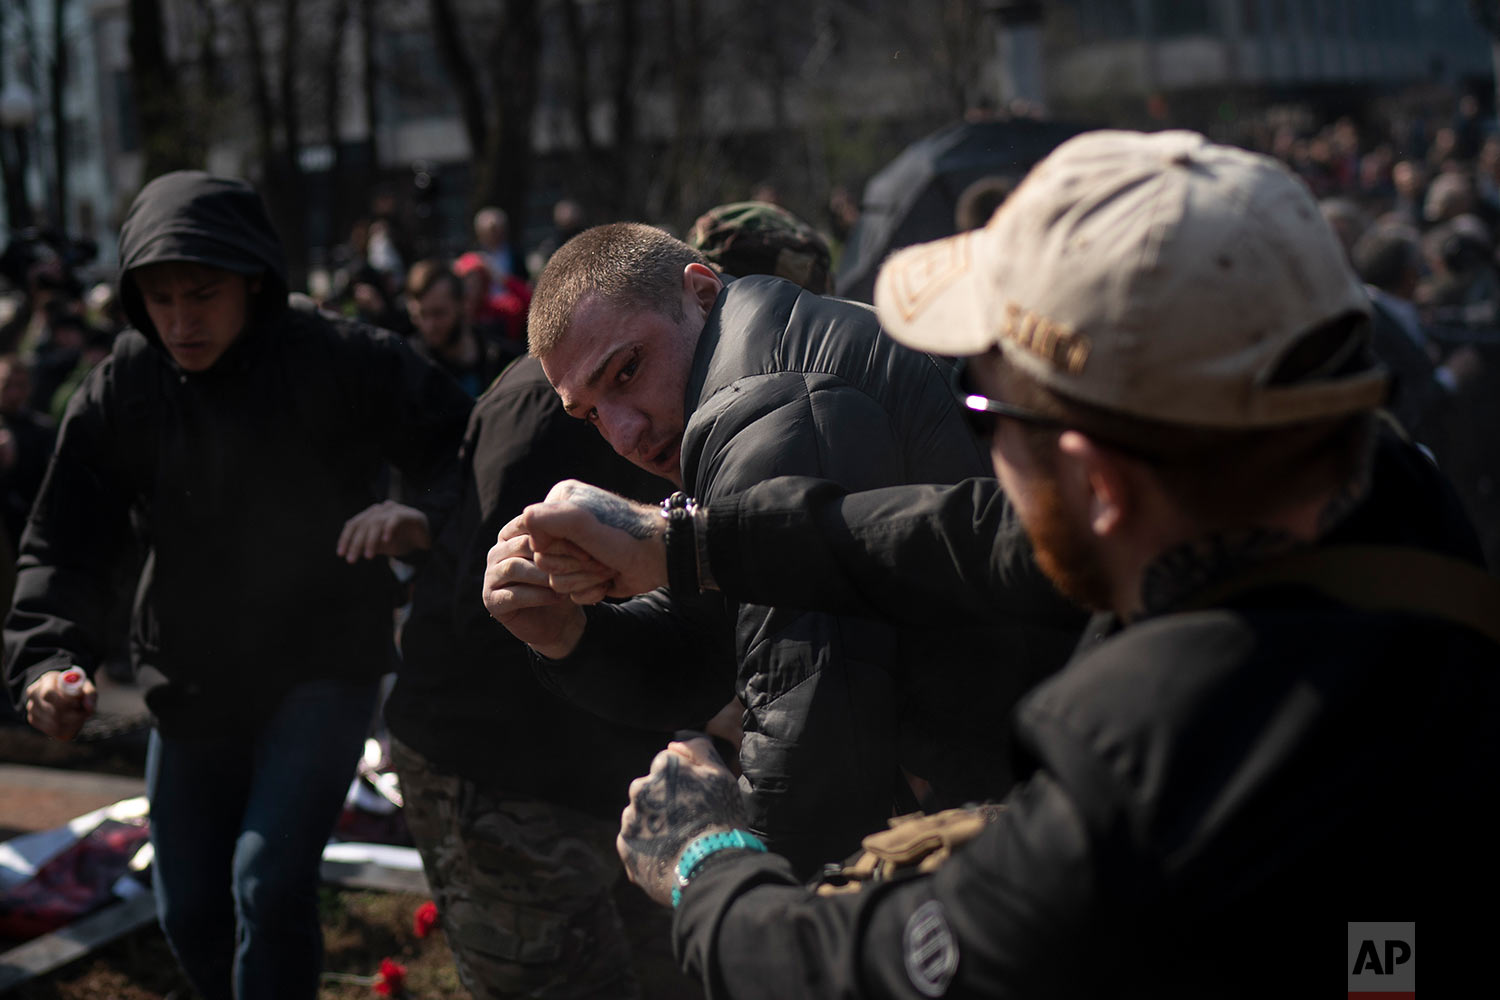 Members of the C14 and other far right organizations fight with pro-Russian supporters at the Soviet-era monument to General Nikolai Vatutin in Kiev, Ukraine, April 13, 2018. (AP Photo/Felipe Dana)